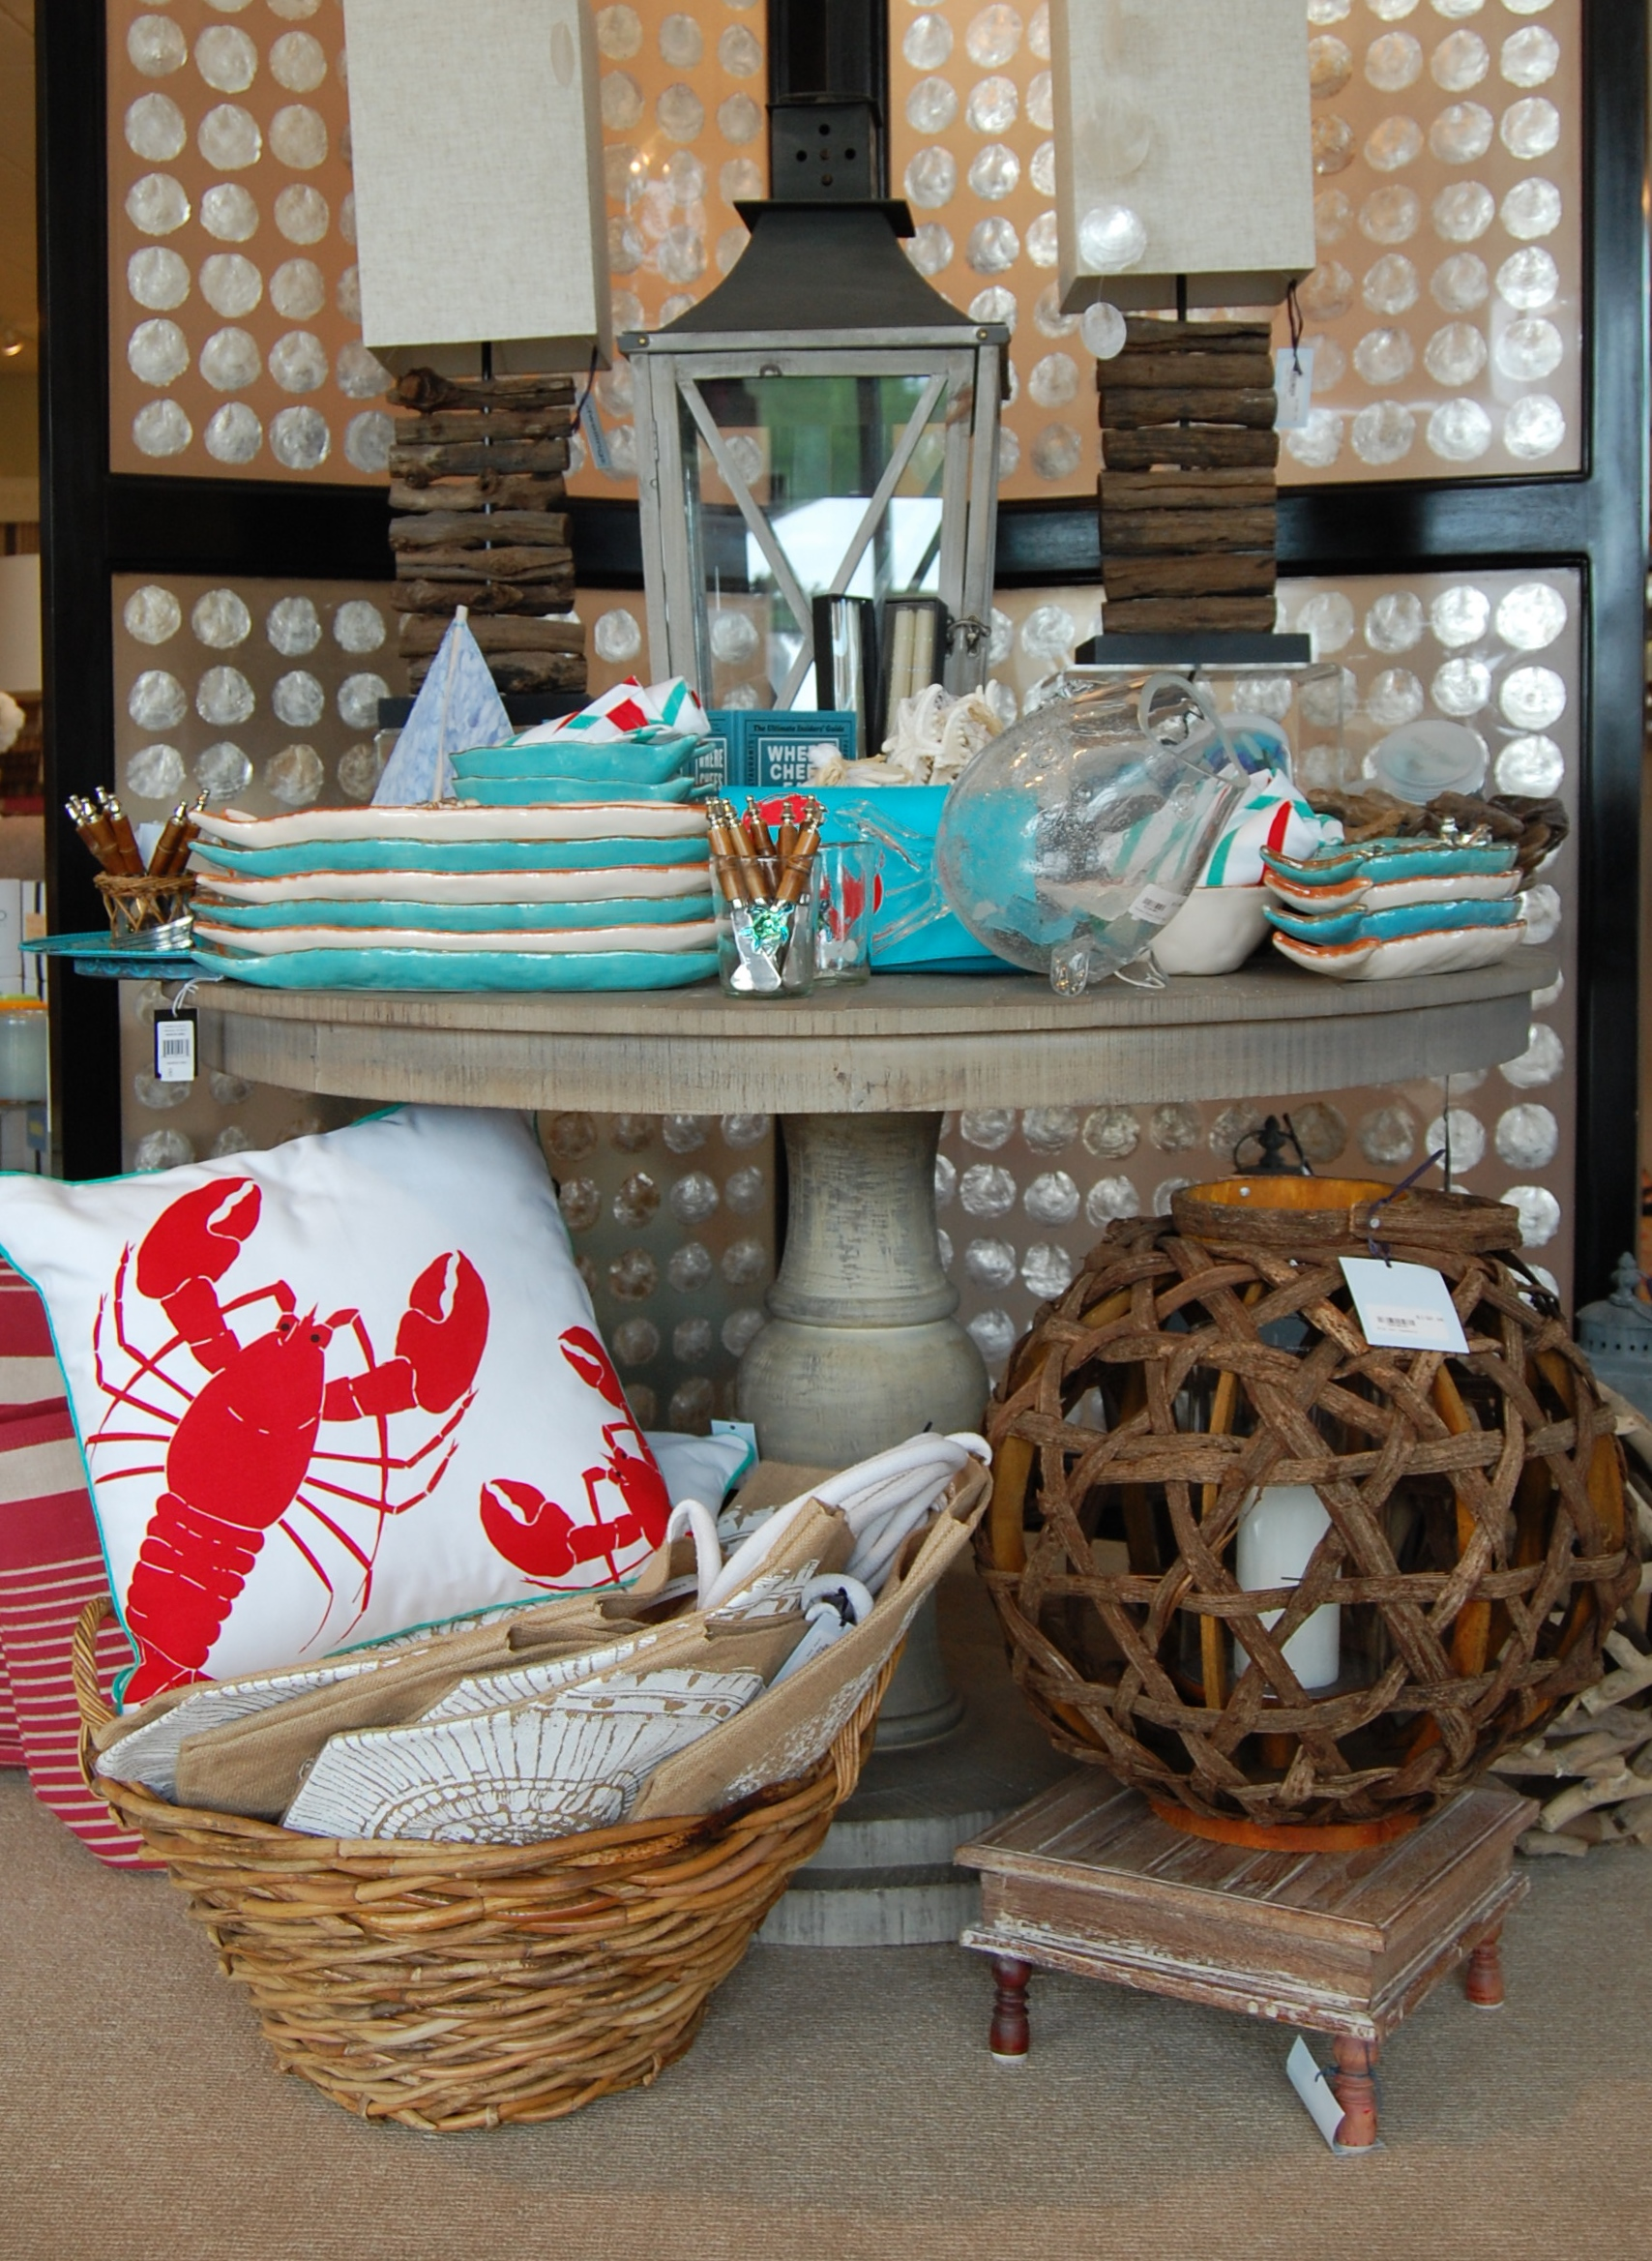 Dwellings a special shop in falmouth me celia bedilia for Home decorative accessories shopping